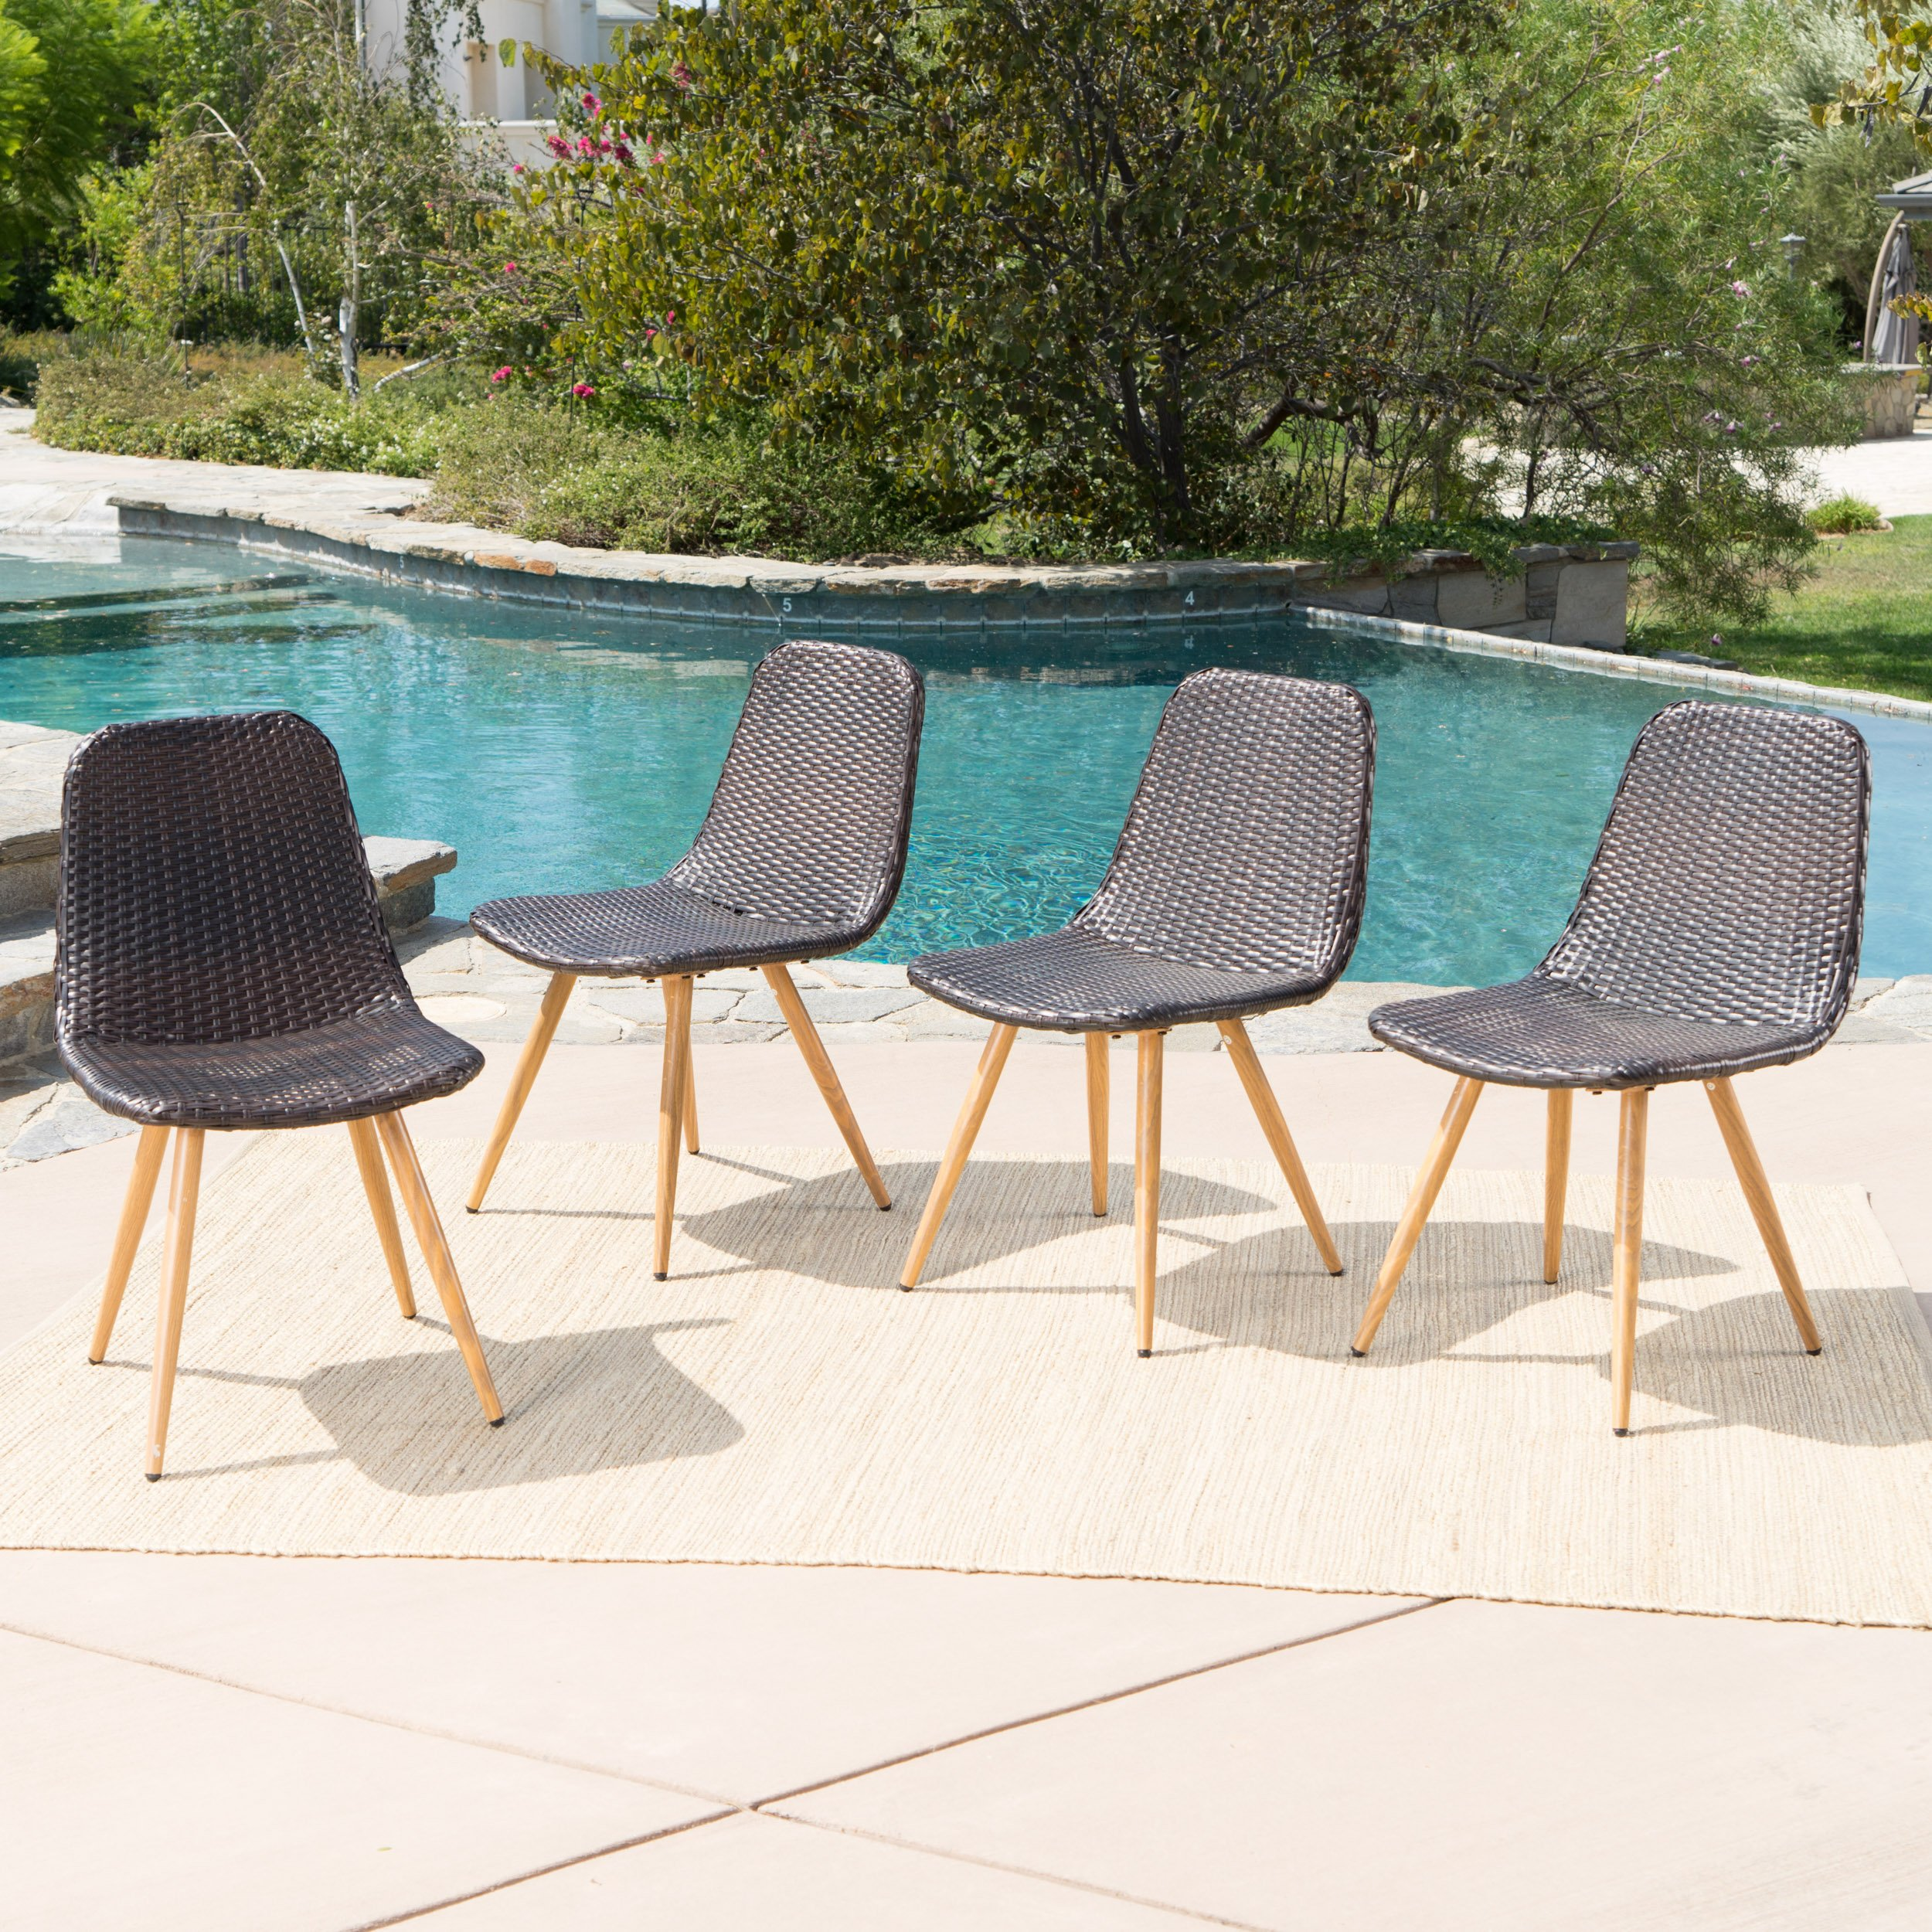 Gilda Outdoor Multi-Brown Wicker Dining Chairs with Light Brown Wood Finished Metal Legs (Set of 4) by GDF Studio